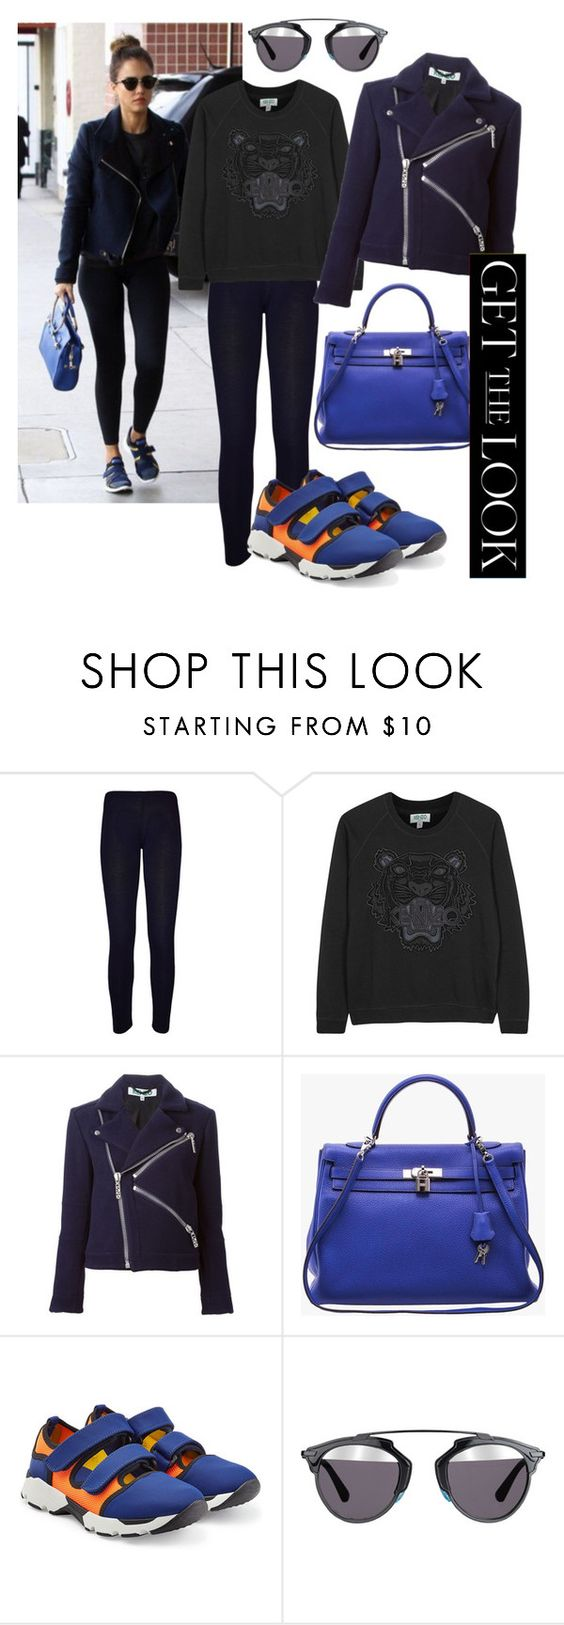 """""""Get the Look Jessica Alba Sporty"""" by anastasya-zamula ❤ liked on Polyvore featuring WearAll, Kenzo, Hermès, Marni, Christian Dior, women's clothing, women, female, woman and misses"""